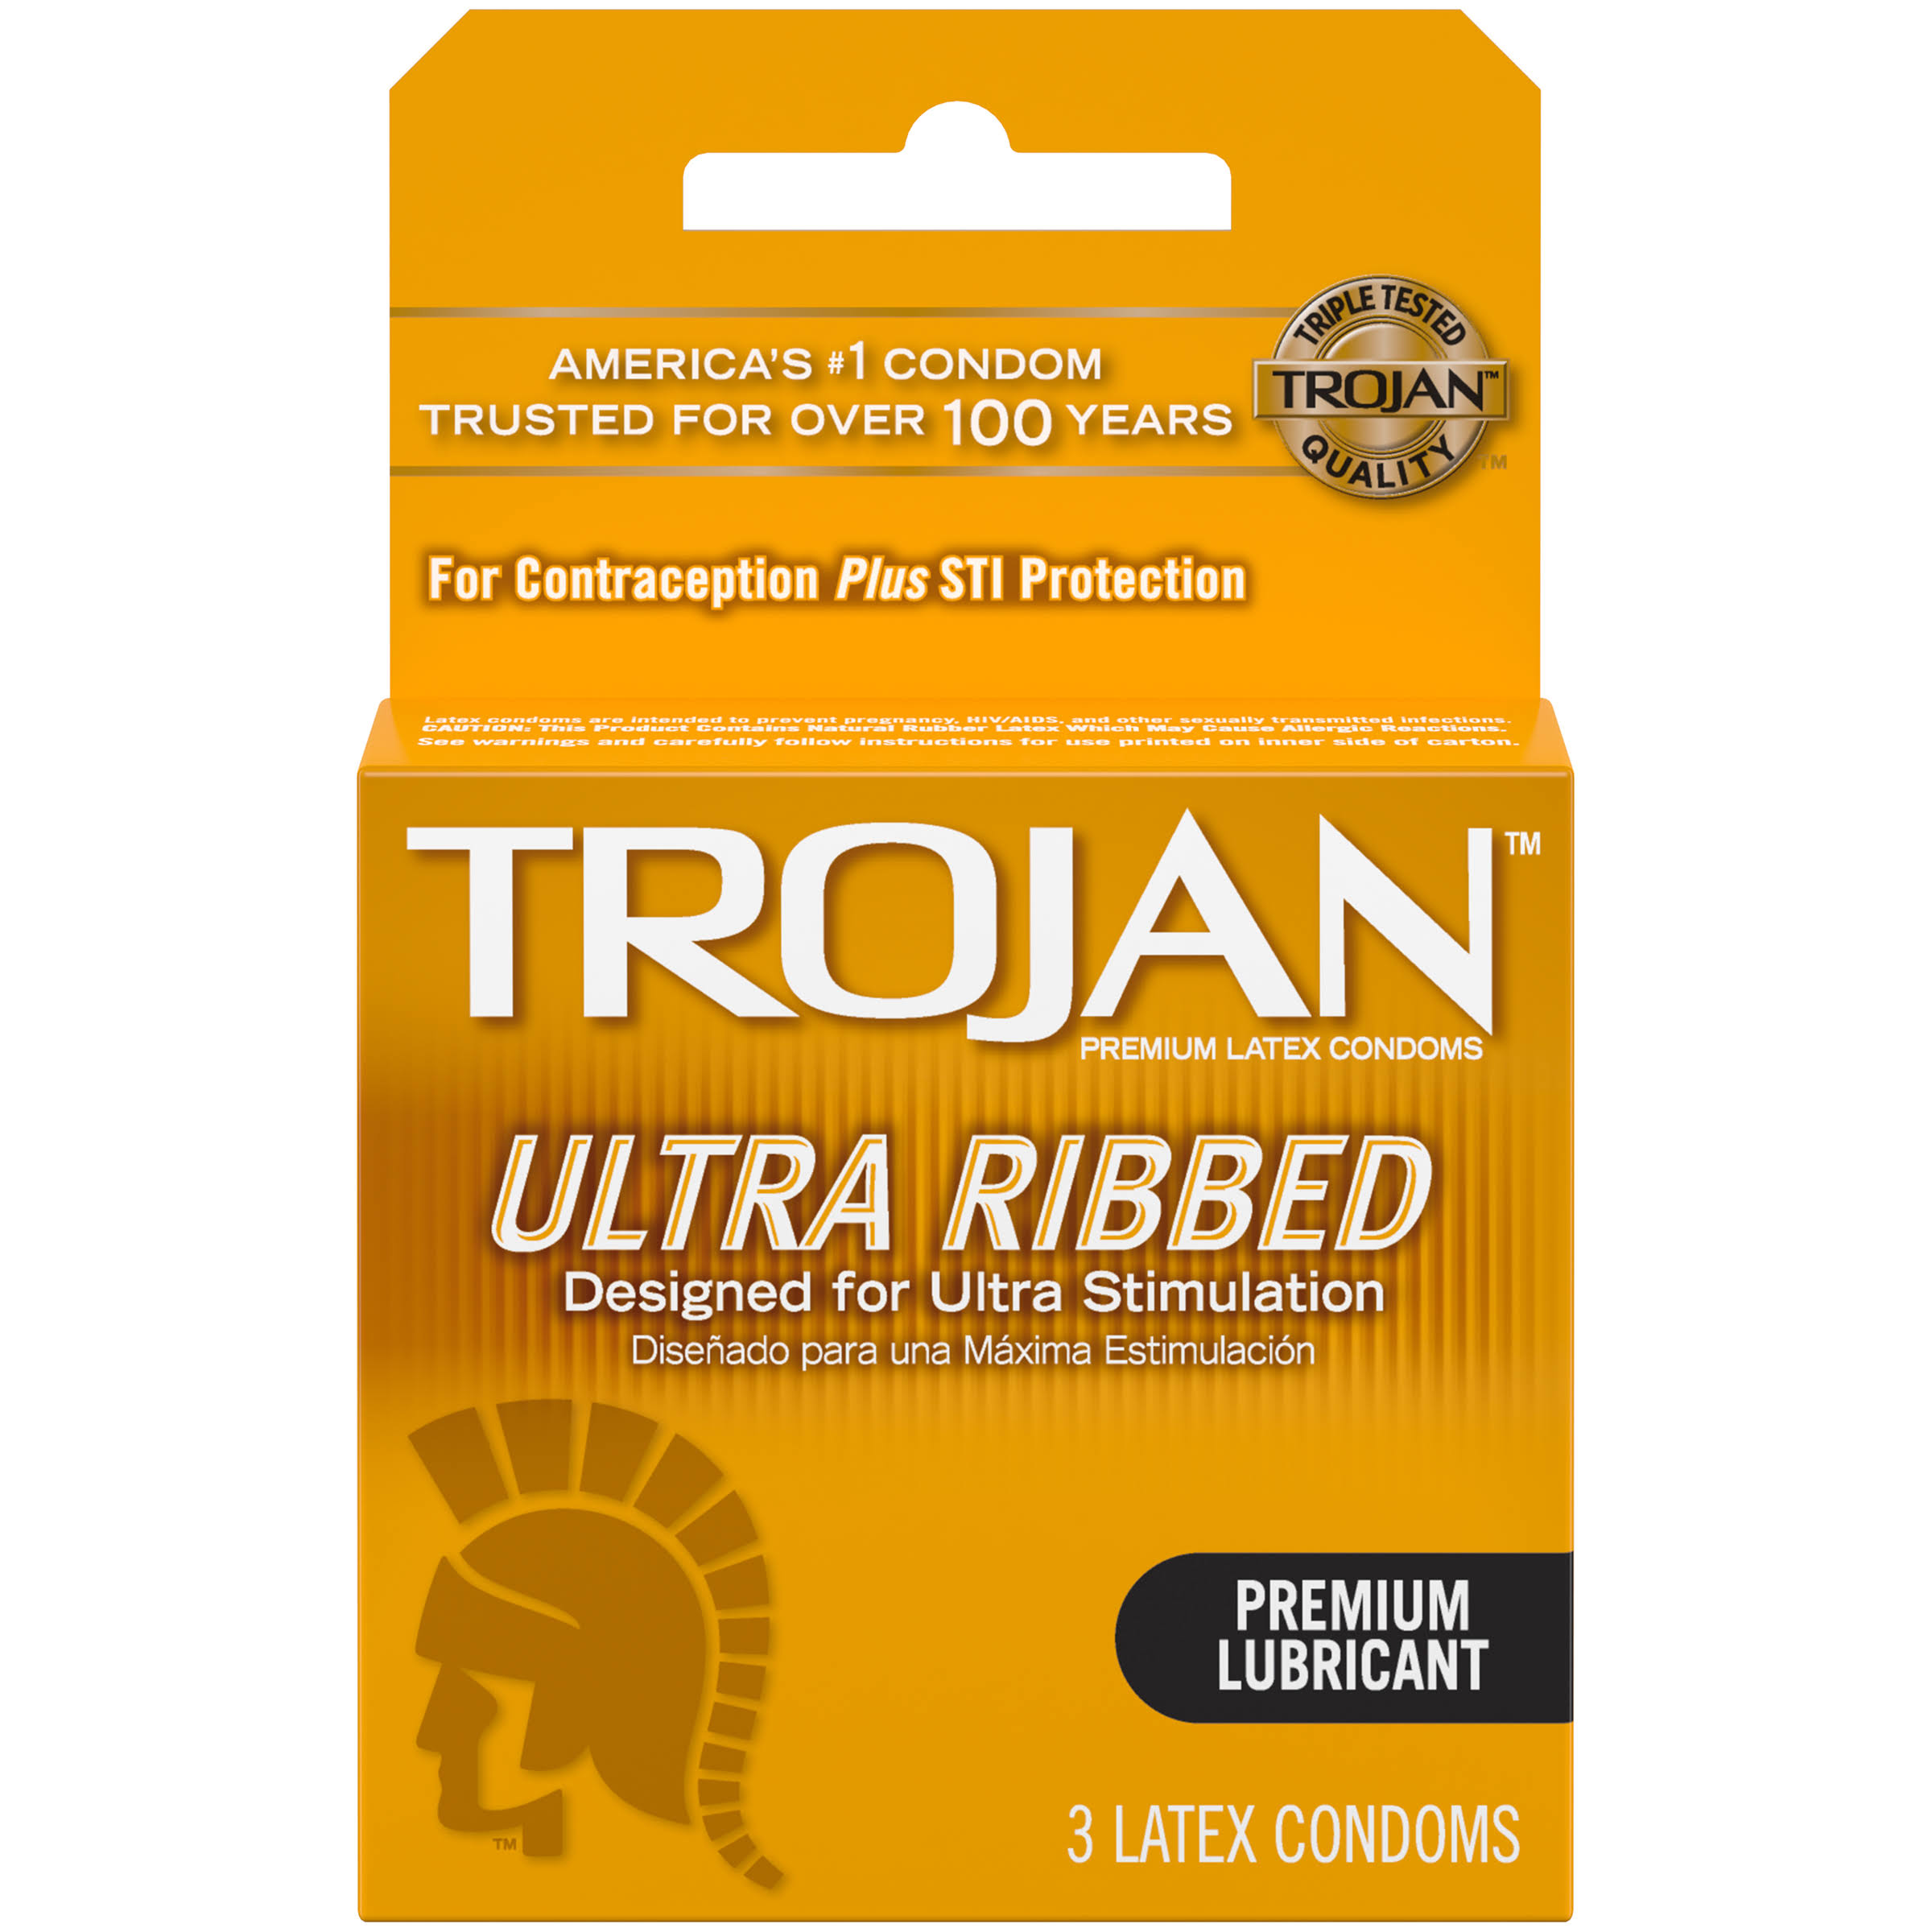 Trojan Ultra Ribbed Premium Lubricant Latex Condoms - 3 Pack